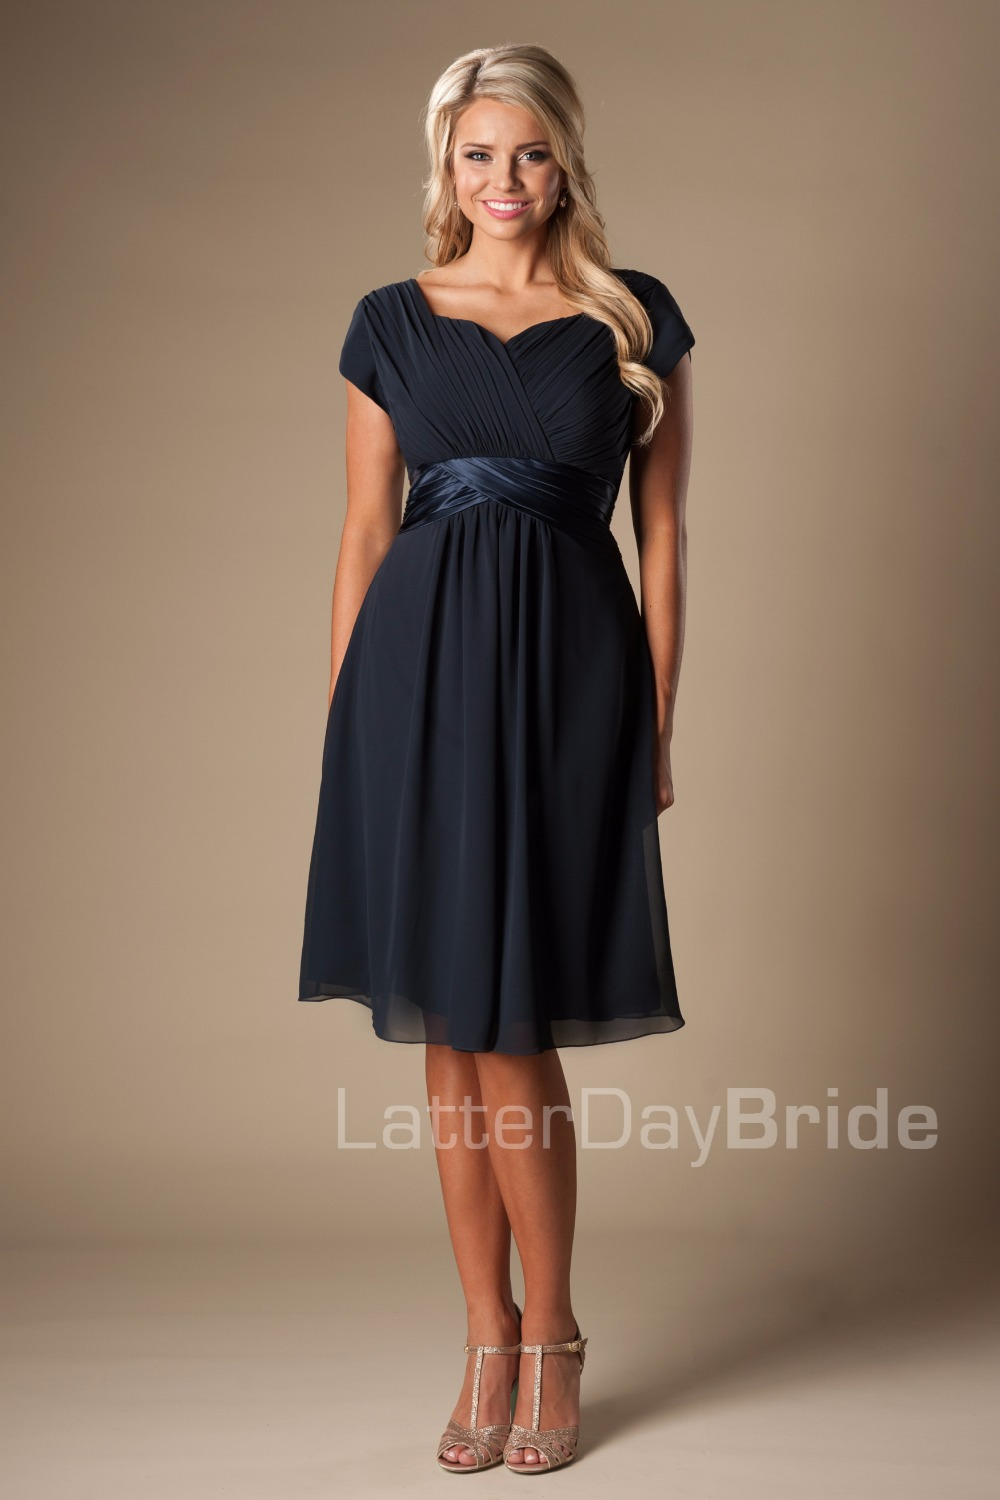 Navy Blue Chiffon Beach Modest Bridesmaid Dresses With Cap Sleeves  A-line Ruches Informal Country Maids Of Honor Gowns CUSTOM